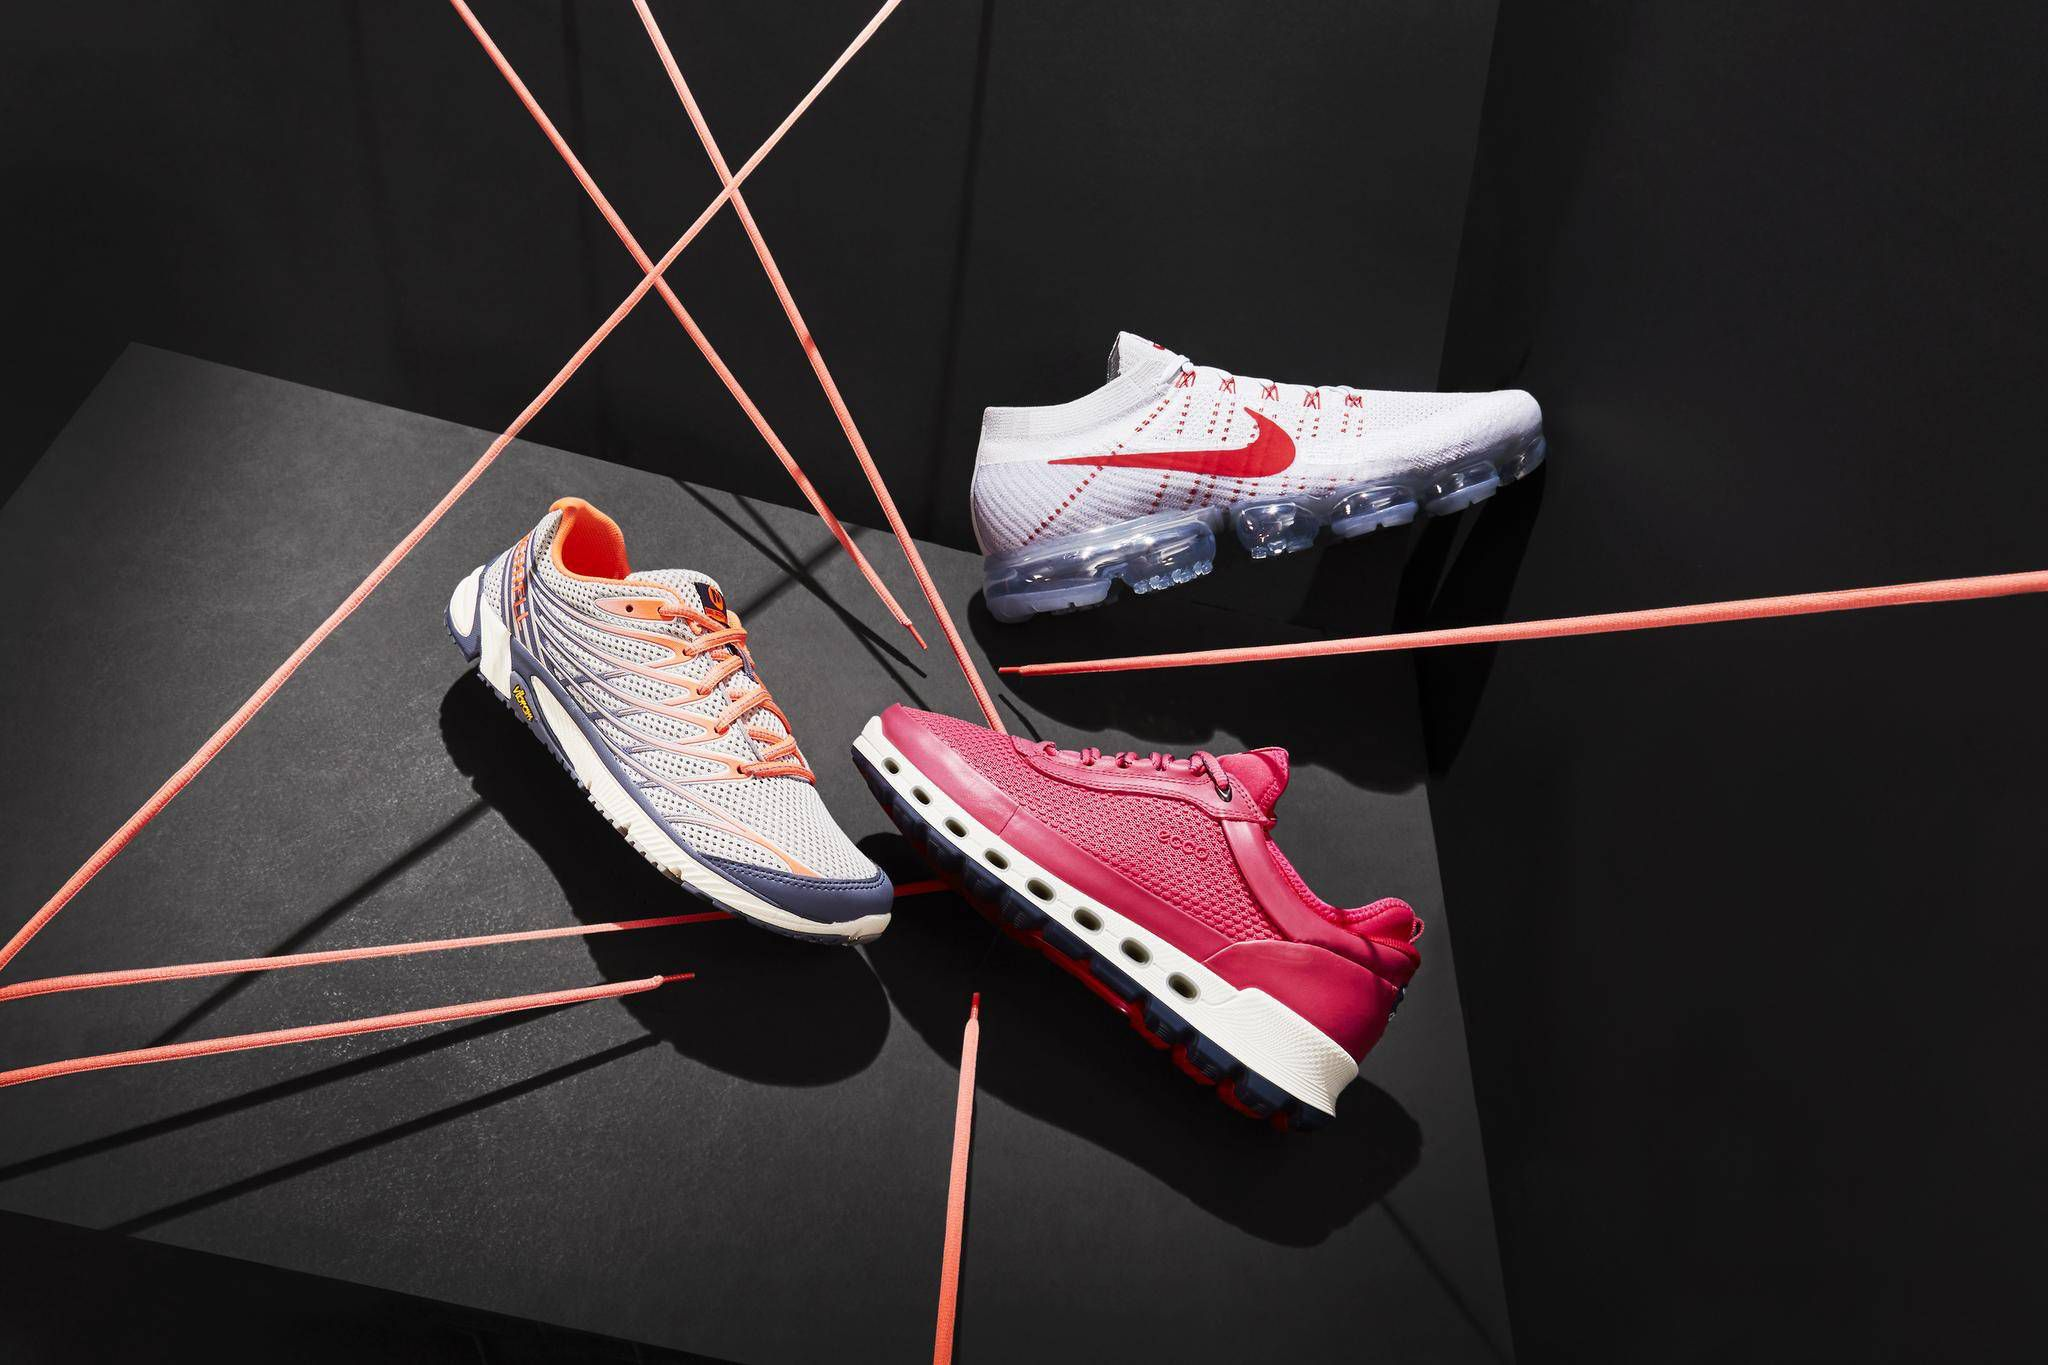 097d47954a2b Running wild  How sneaker brands stay ahead of the curve - The Globe and  Mail